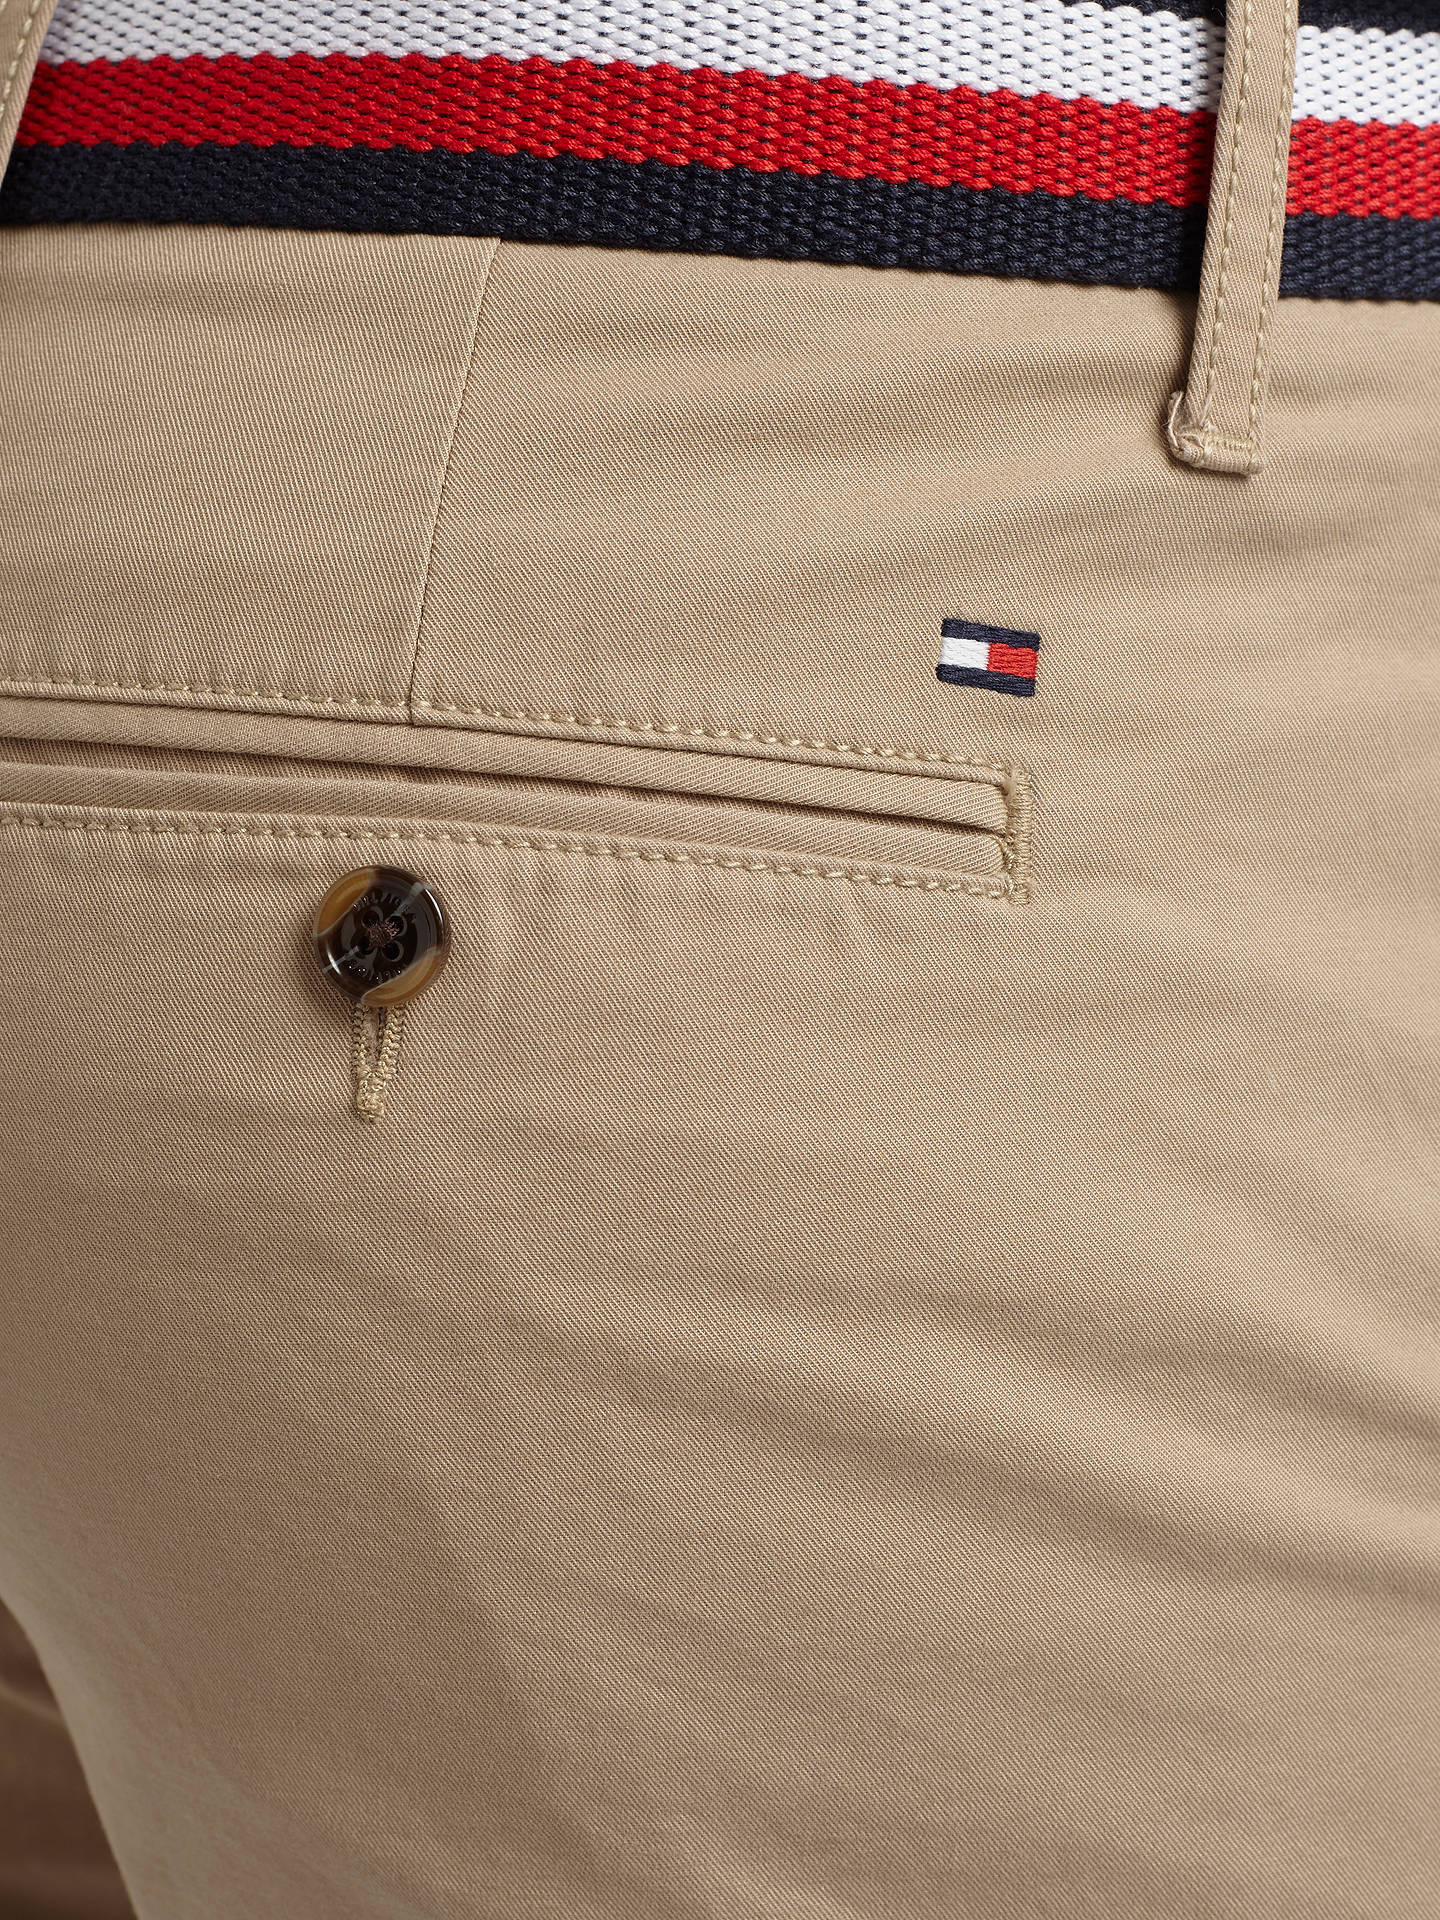 69632e55 ... Buy Tommy Hilfiger John Sort Light Twill Cargo Shorts, Batique Khaki,  30R Online at